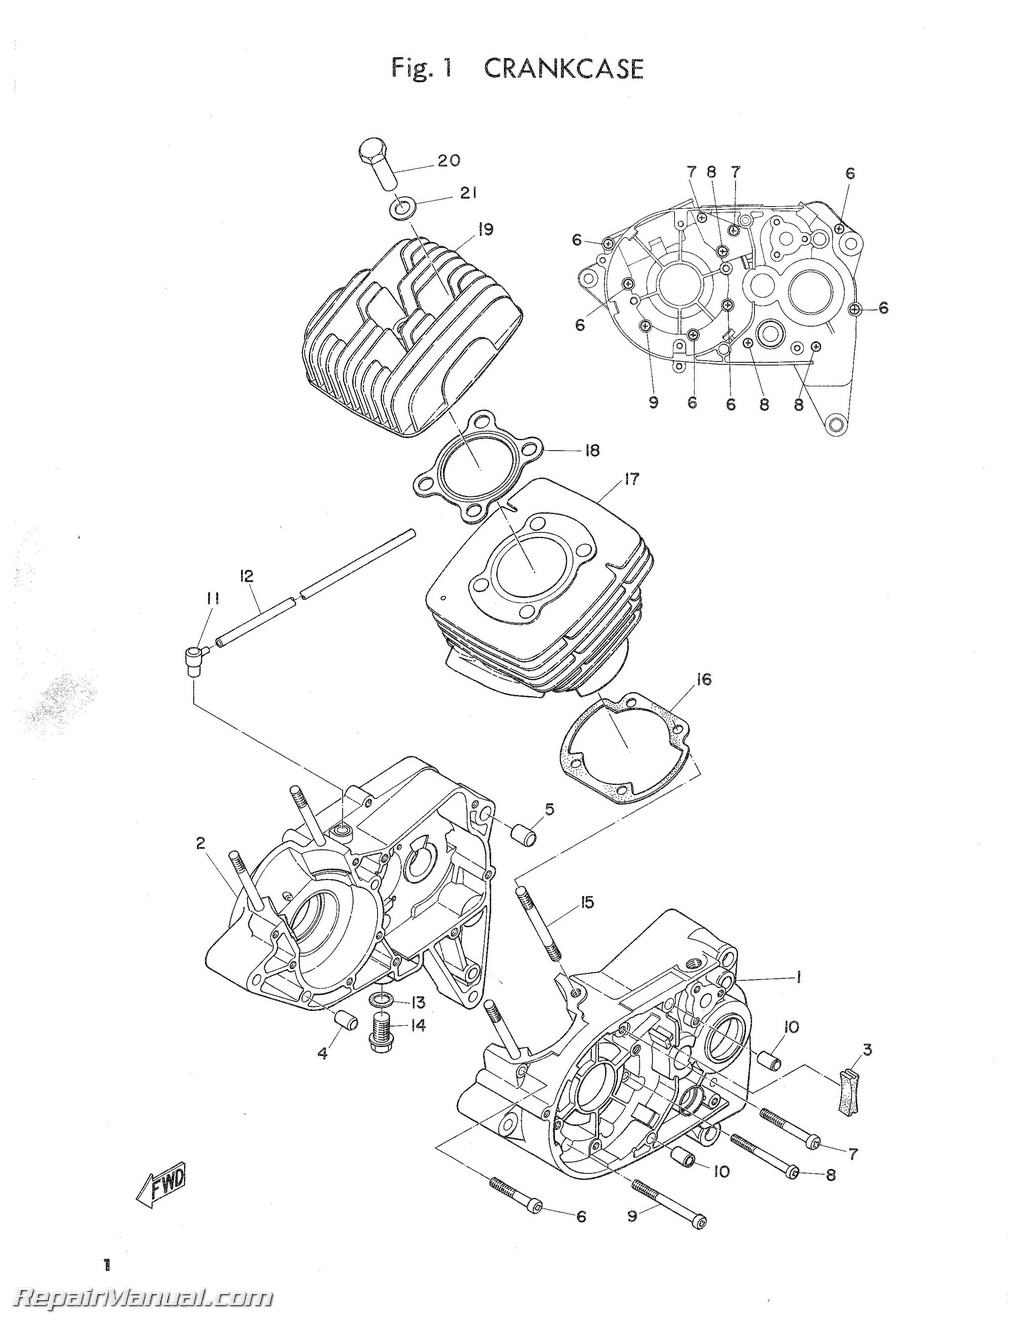 1969 Yamaha CT1 Series Parts Manual